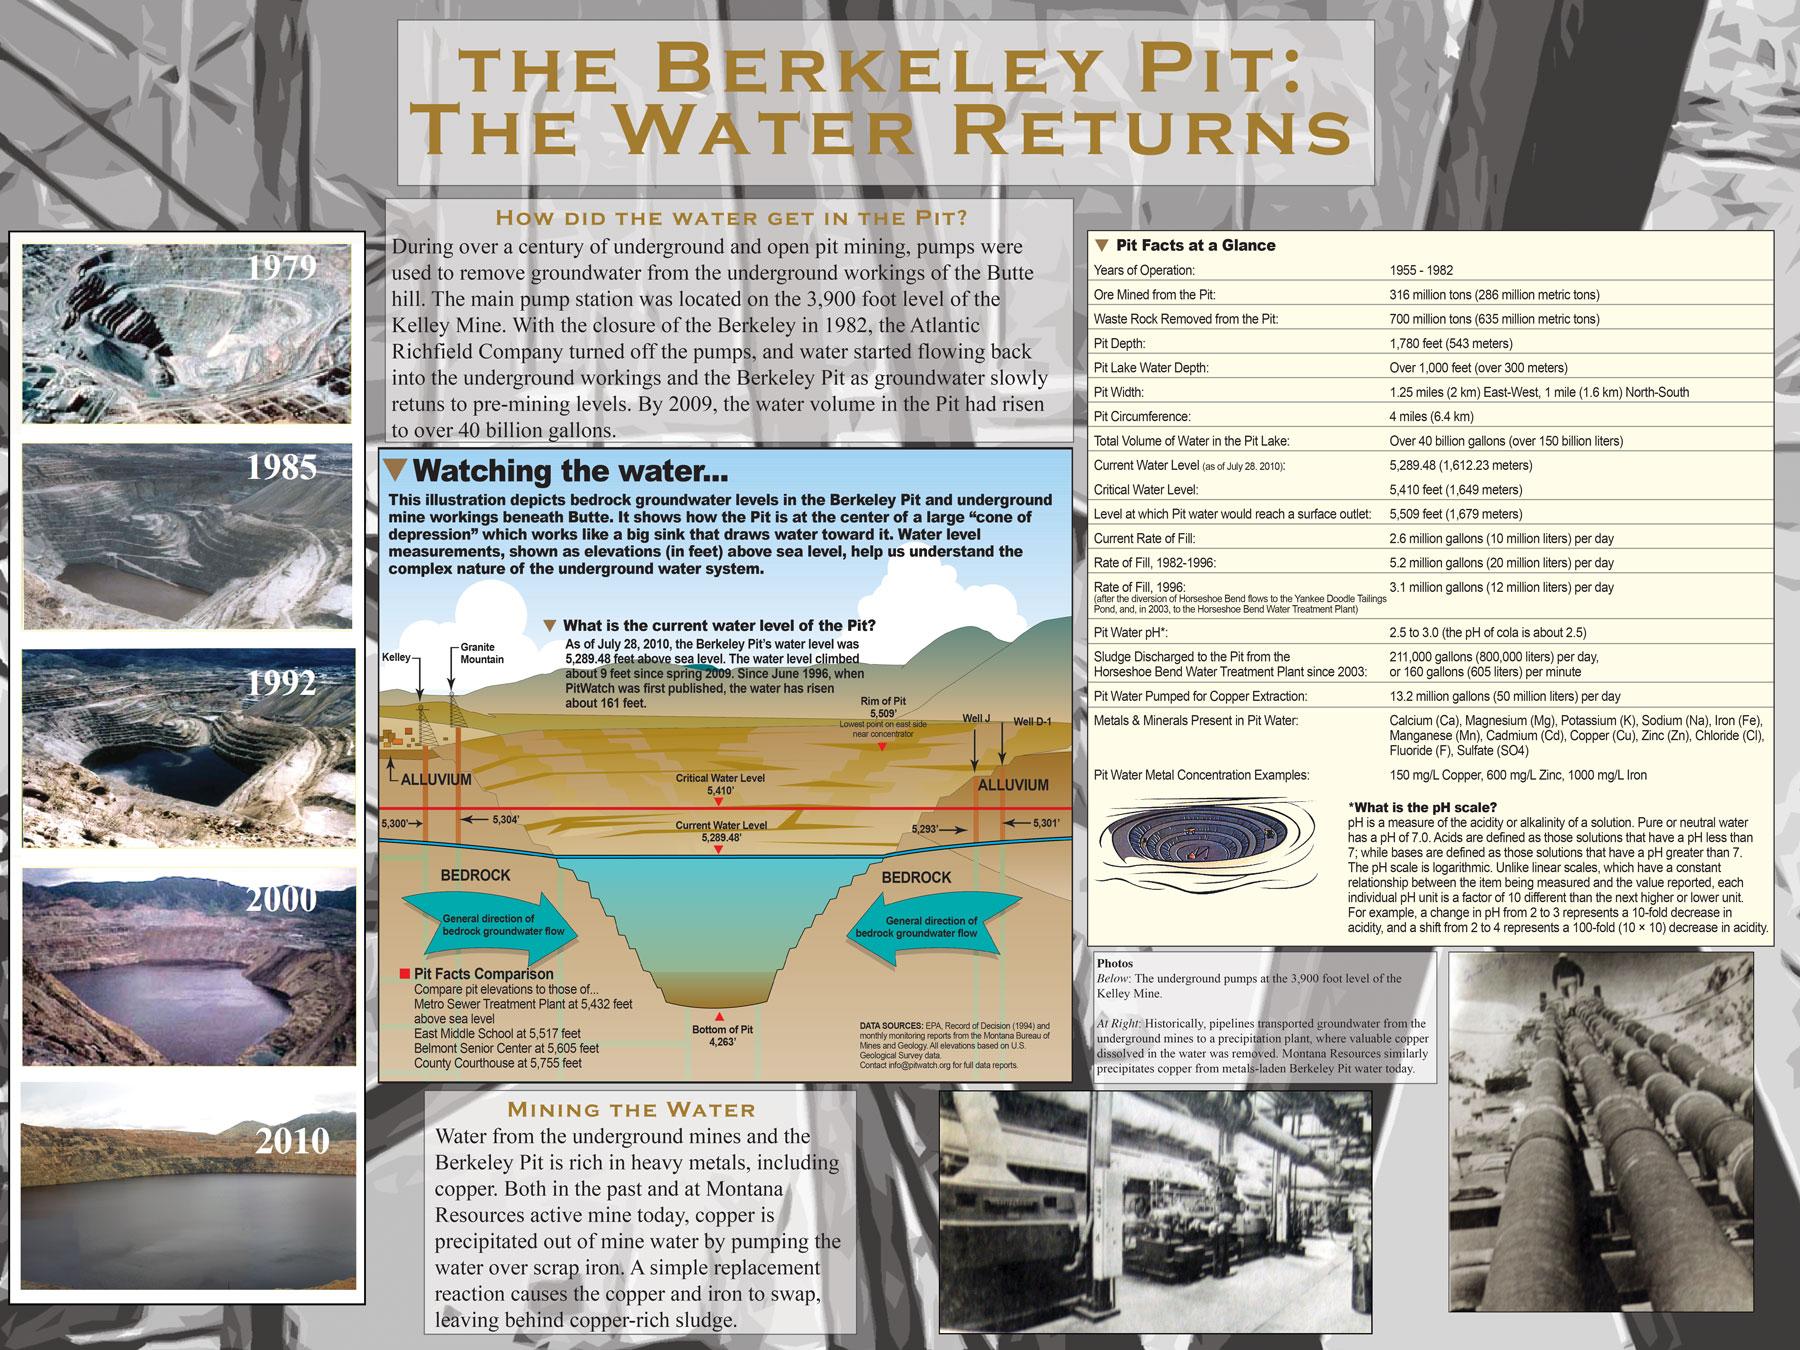 Berkeley Pit Poster Series: The Water Returns. Click on the image to view a larger version, or use the links at the bottom of the page to download a high-resolution version.